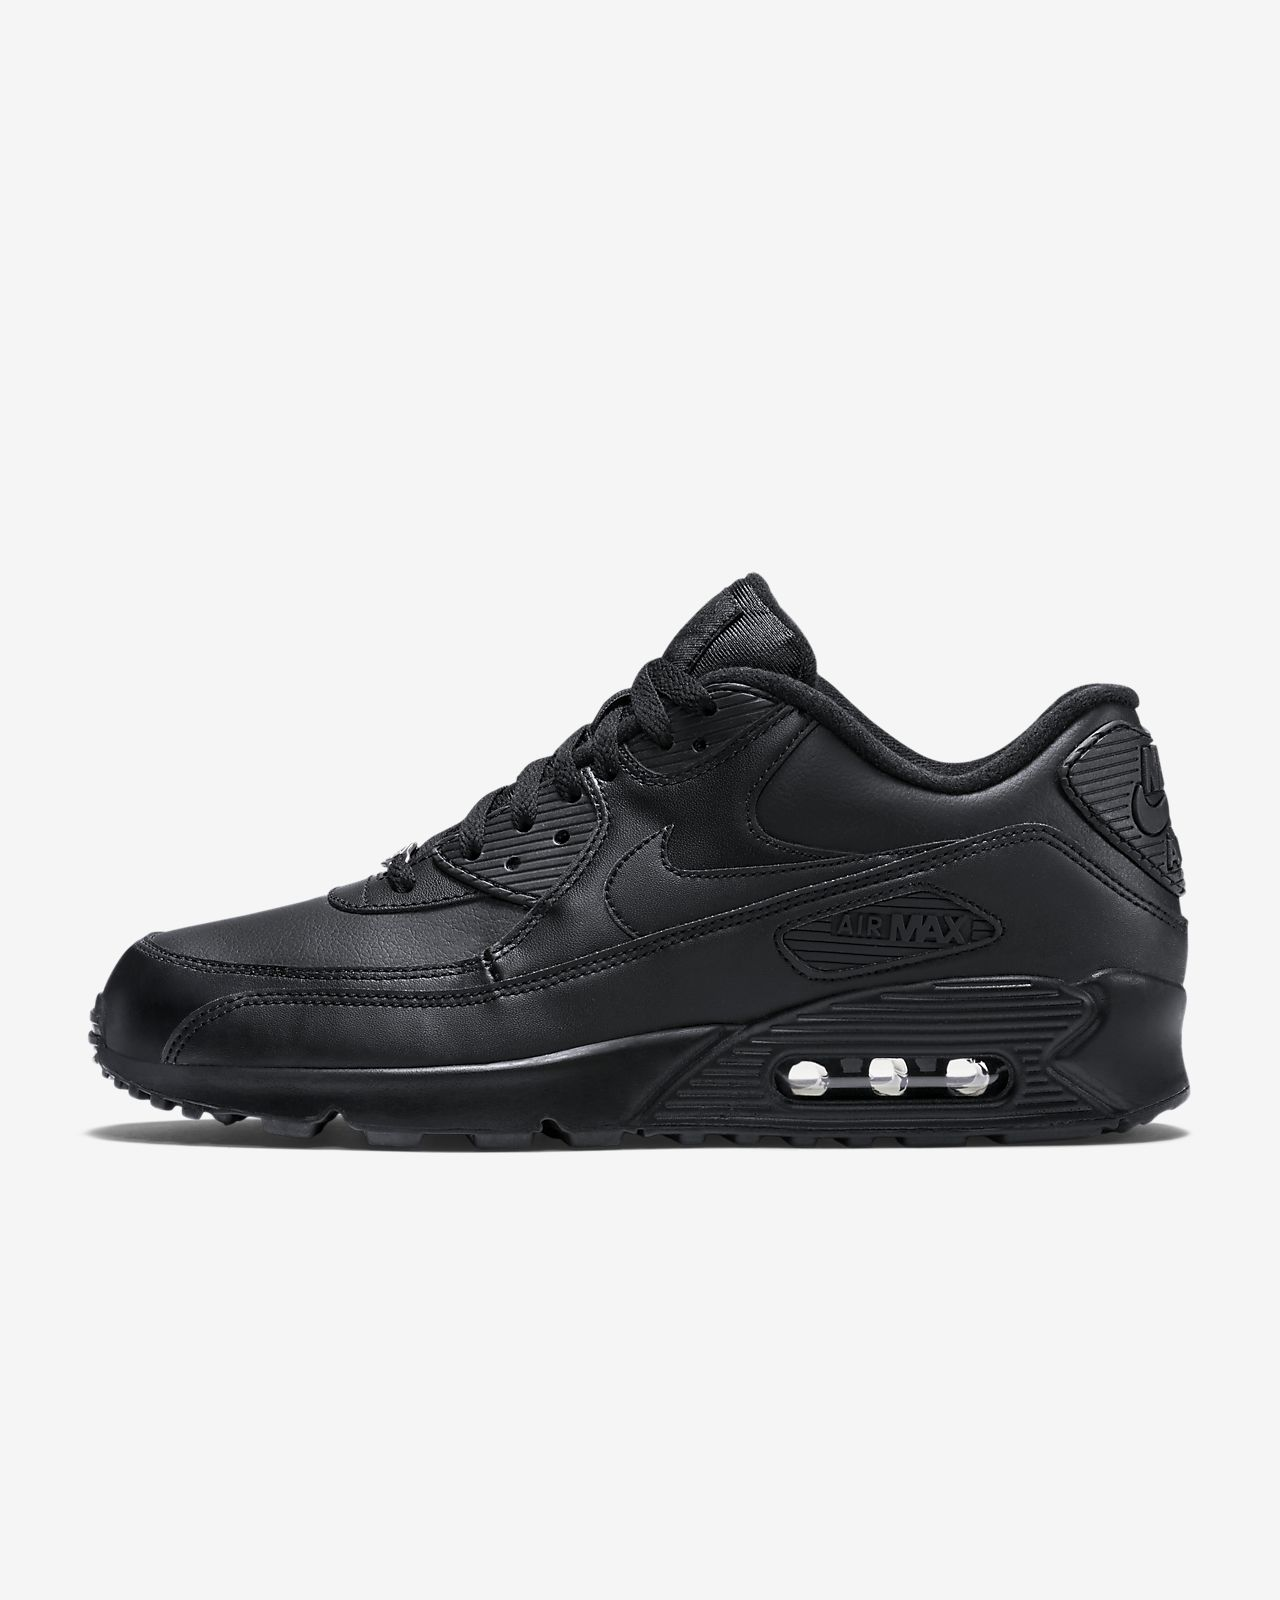 innovative design 9efa1 8c545 ... Buty męskie Nike Air Max 90 Leather